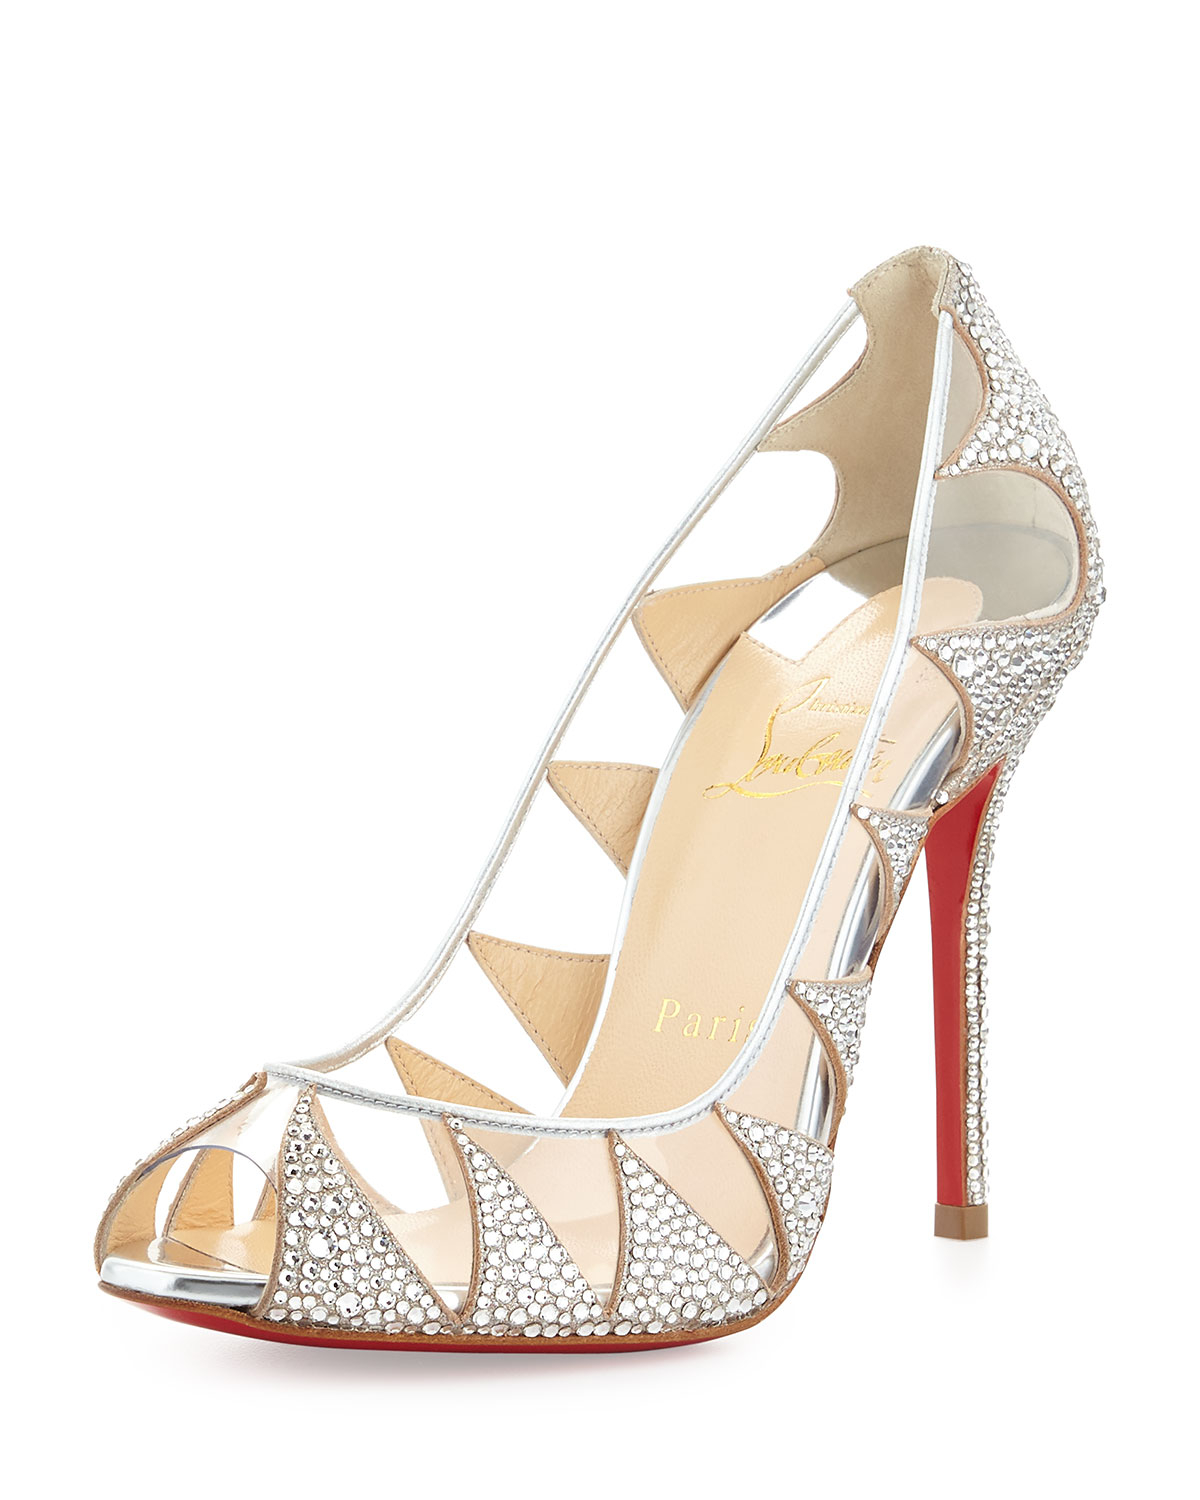 christian louboutin indera crystal peep toe red sole pump silver